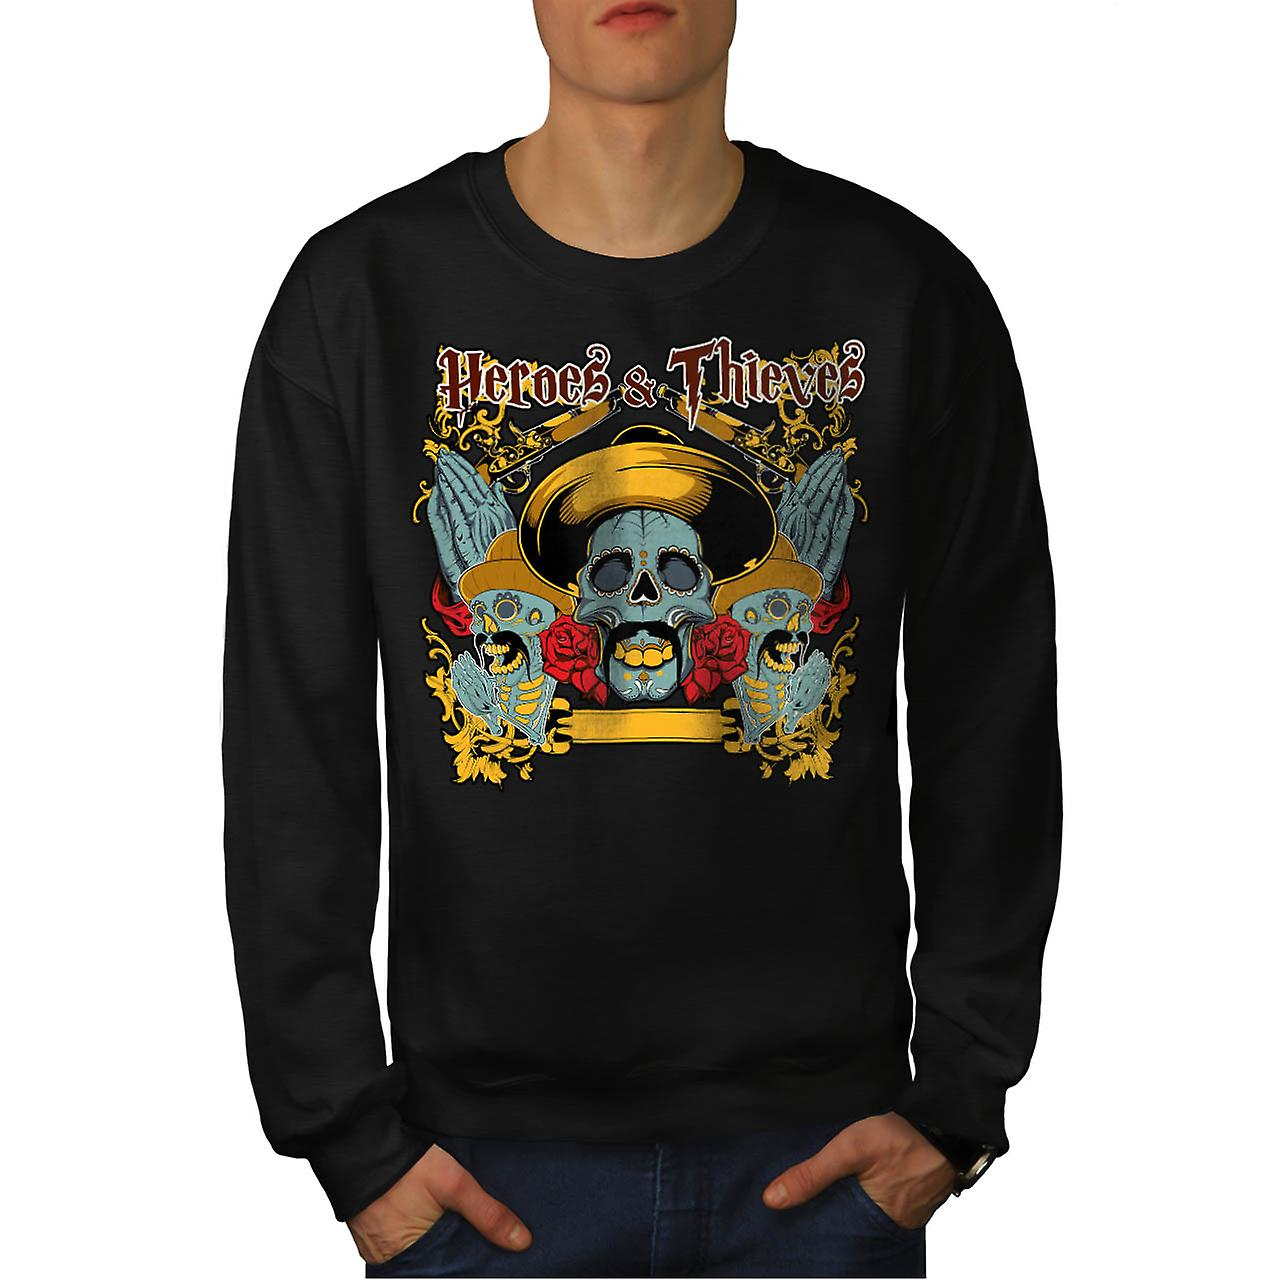 Heroes Thieves Mexico Dead Skull Men Black Sweatshirt | Wellcoda